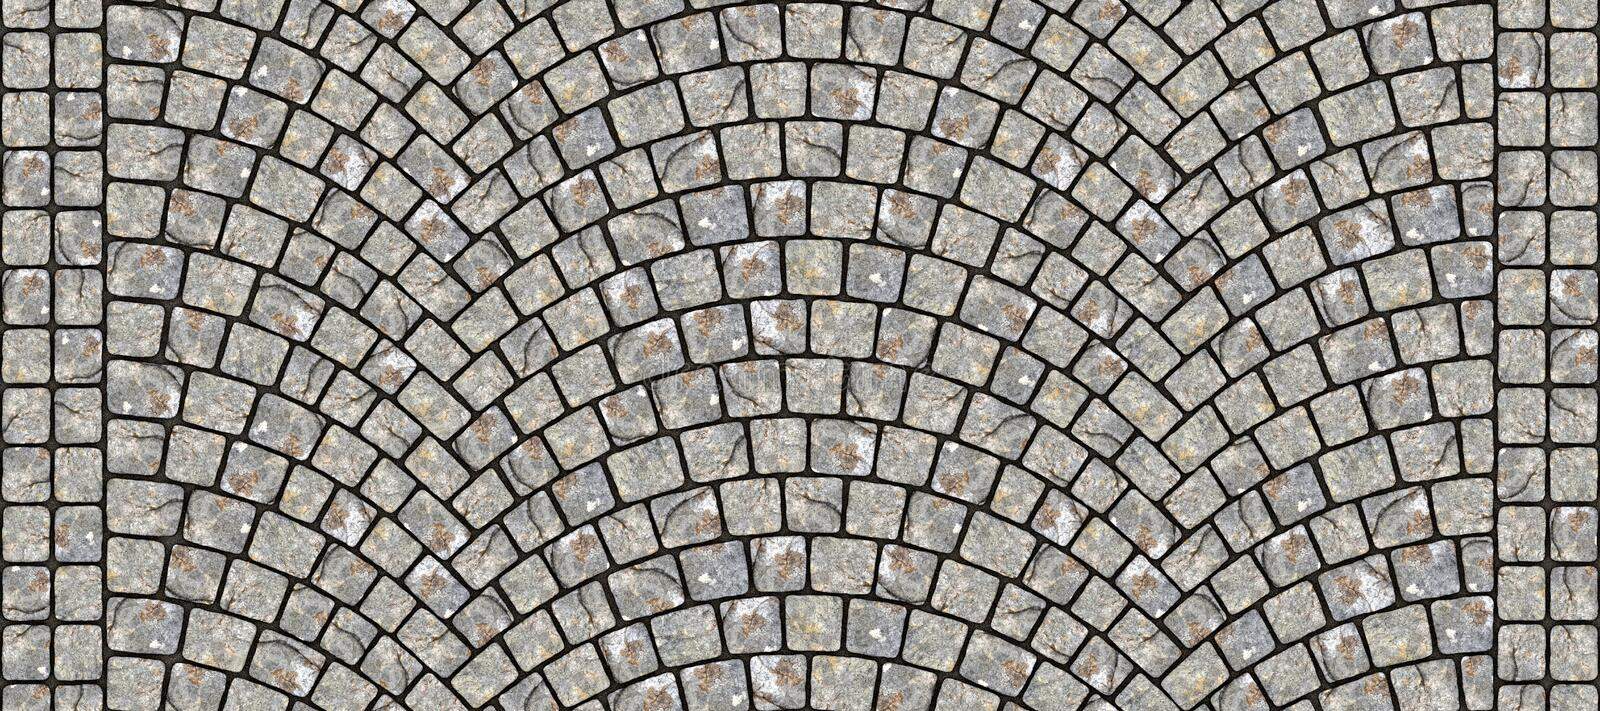 Road curved cobblestone texture 100. Cobblestone arched pavement road with edge courses at the sidewalk. Seamless tileable repeating 3D rendering texture vector illustration